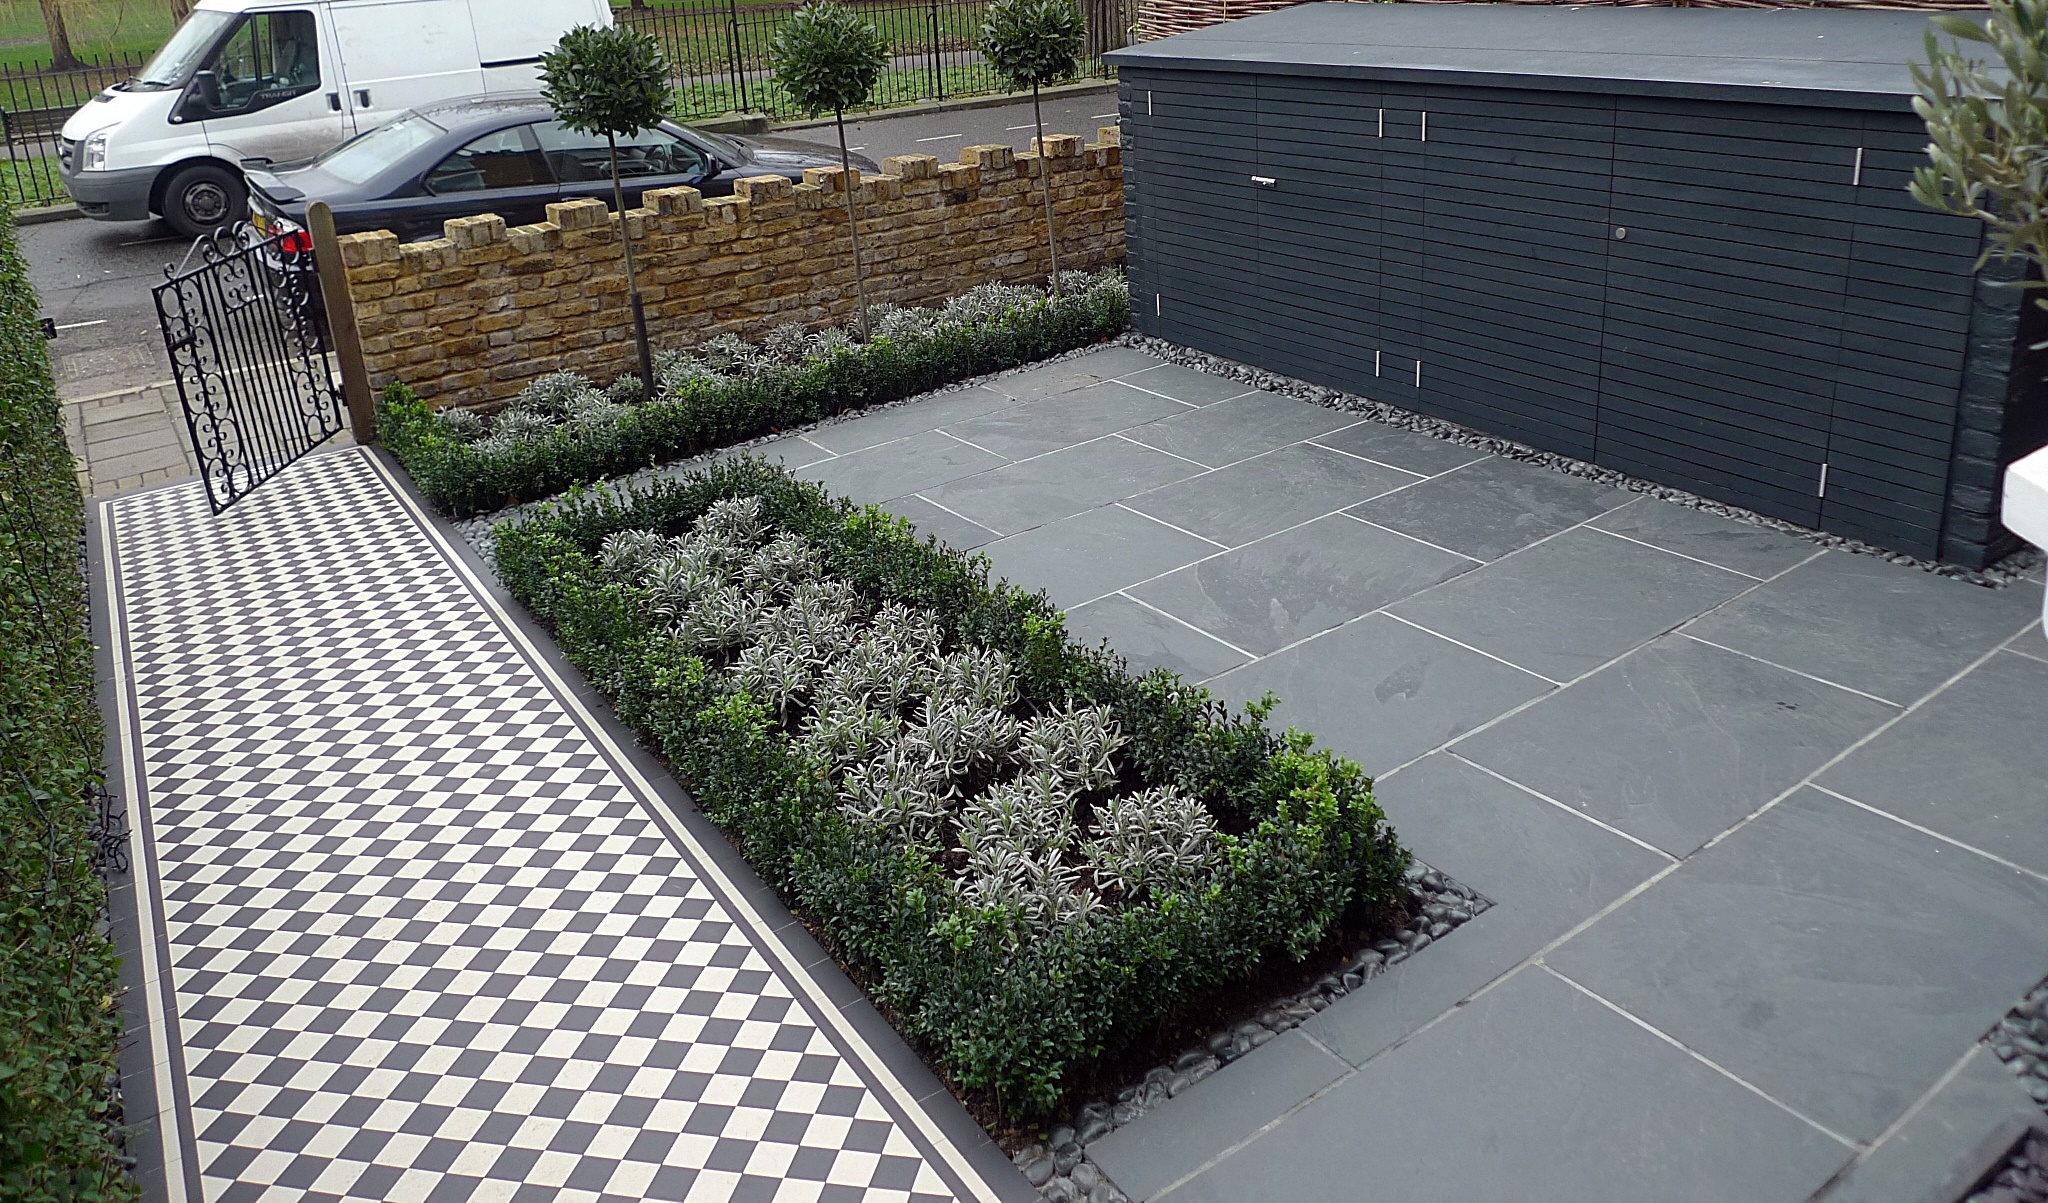 slate paving bespoke bin bike storage formal box hedge and lavender black and white victroain mosaic tile path clapham balham battersea streatham putney london